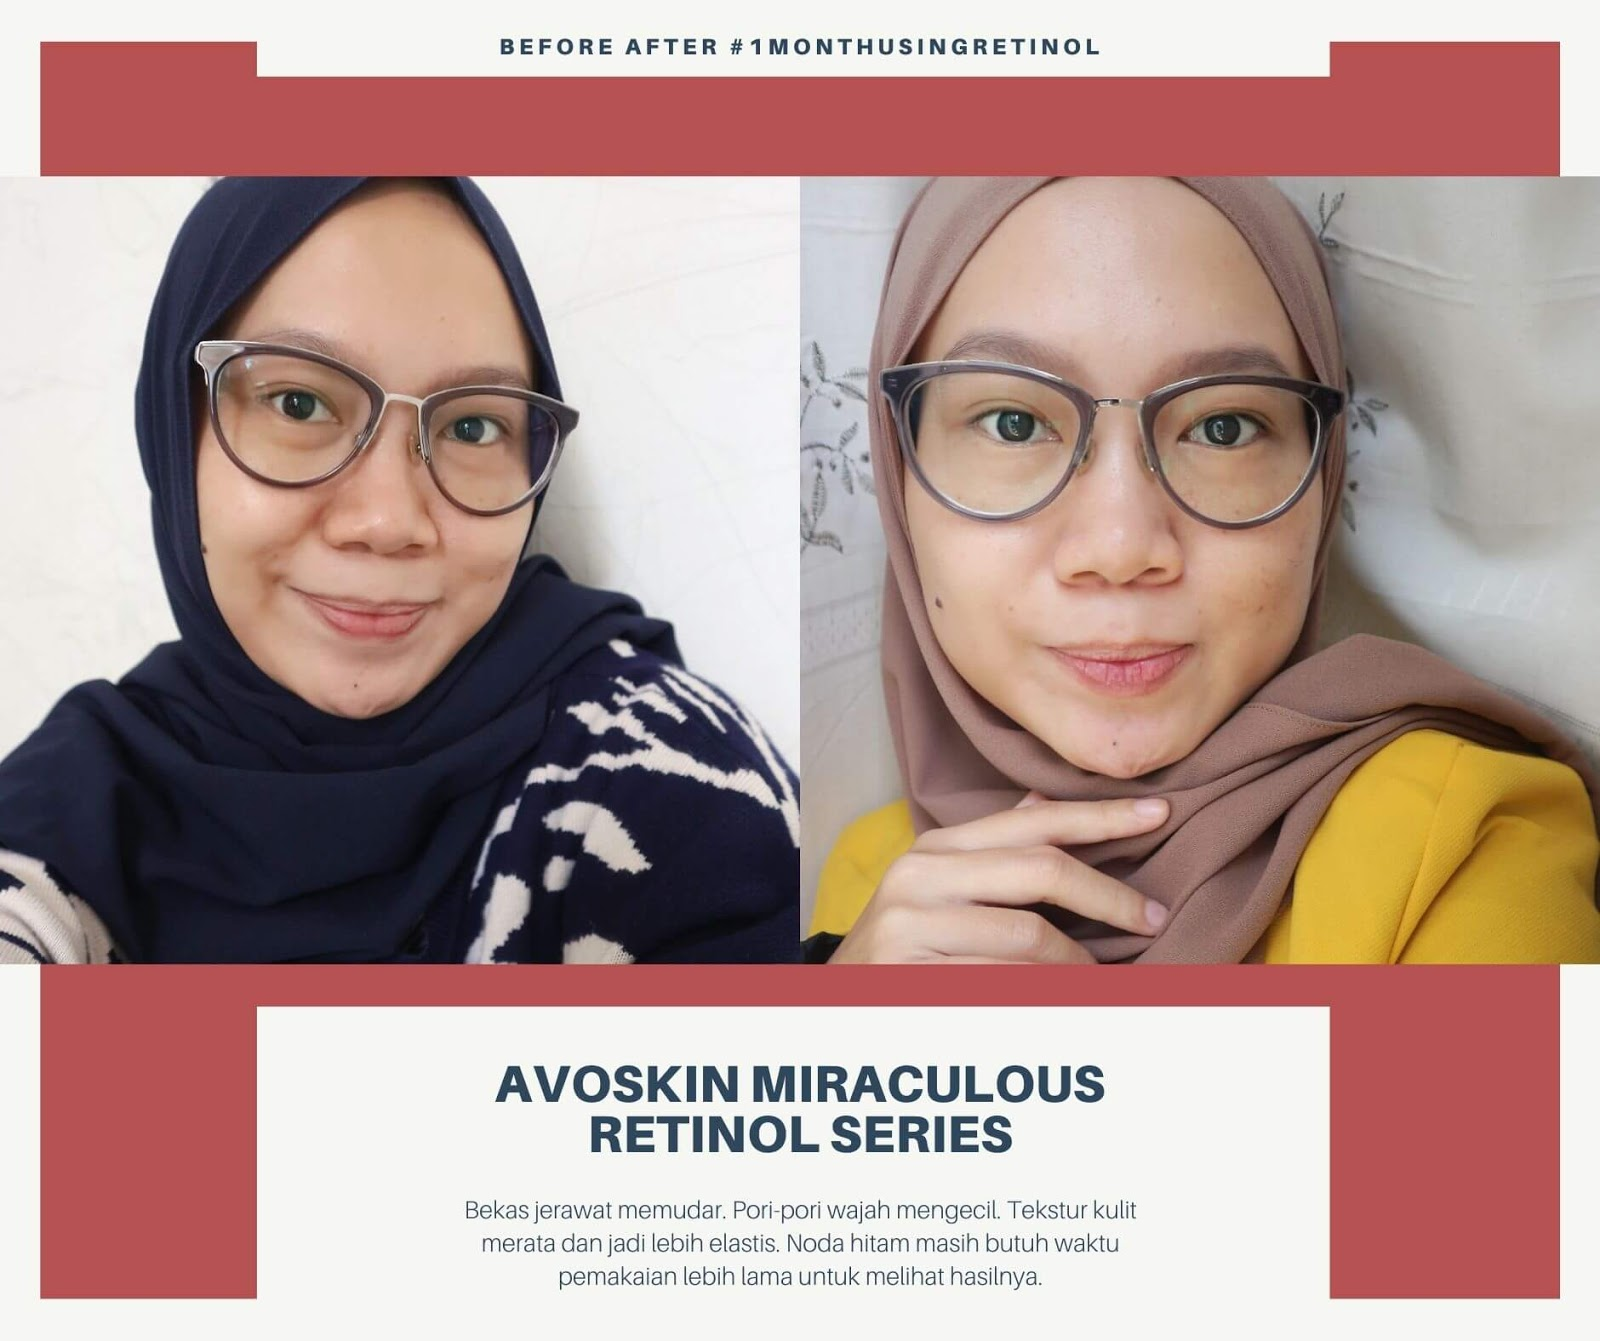 Before After Pemakaian Avoskin Miraculous Retinol Series